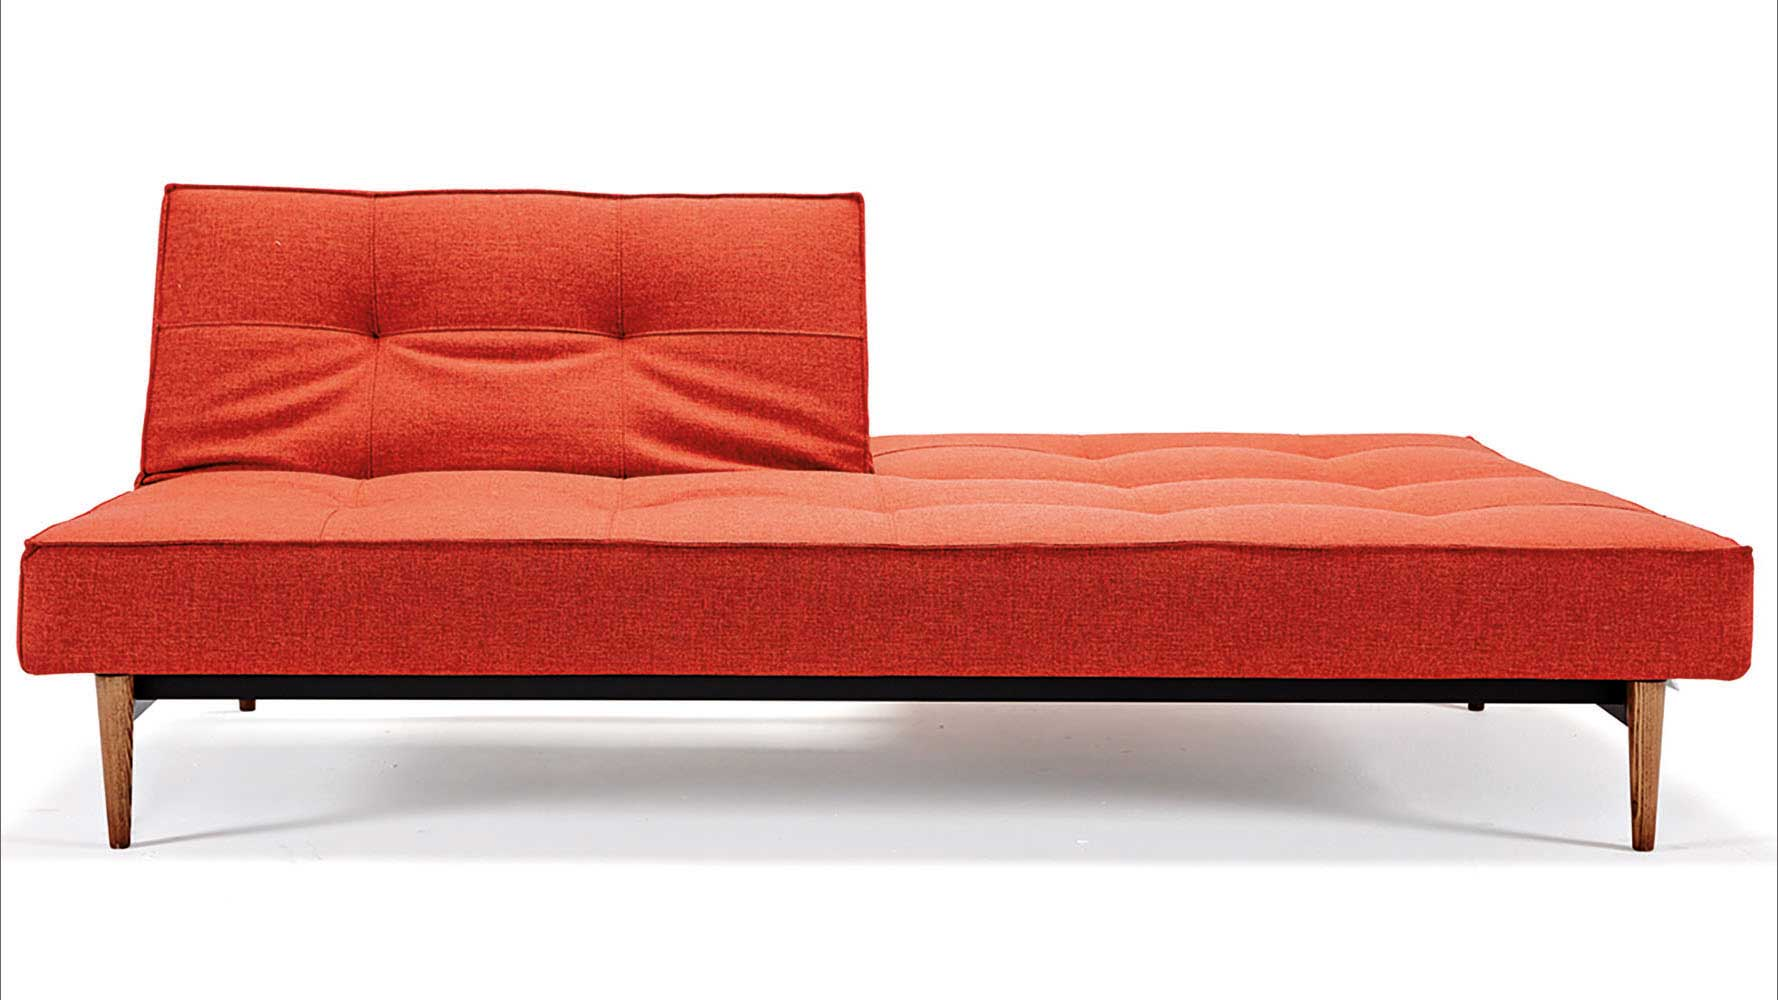 Wonderful image of Home / LIVING / Sleepers / Sofi Split Back Sofabed Wood Base with #B1351A color and 1778x1000 pixels